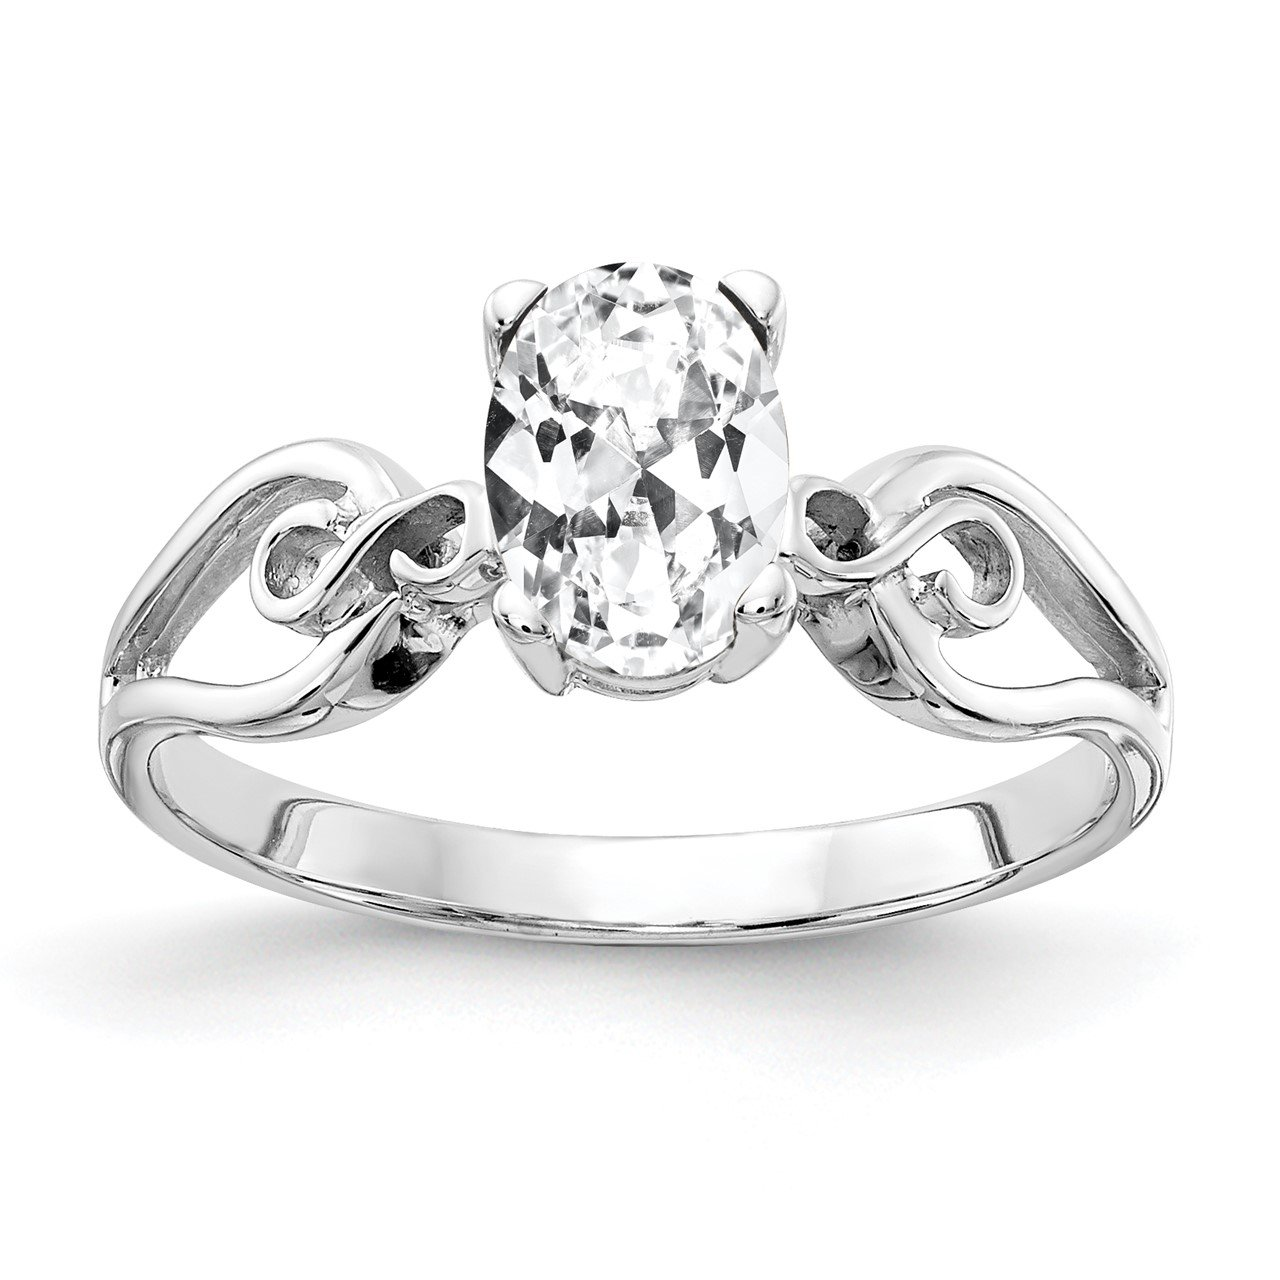 14k White Gold 8x6mm Oval Cubic Zirconia Ring